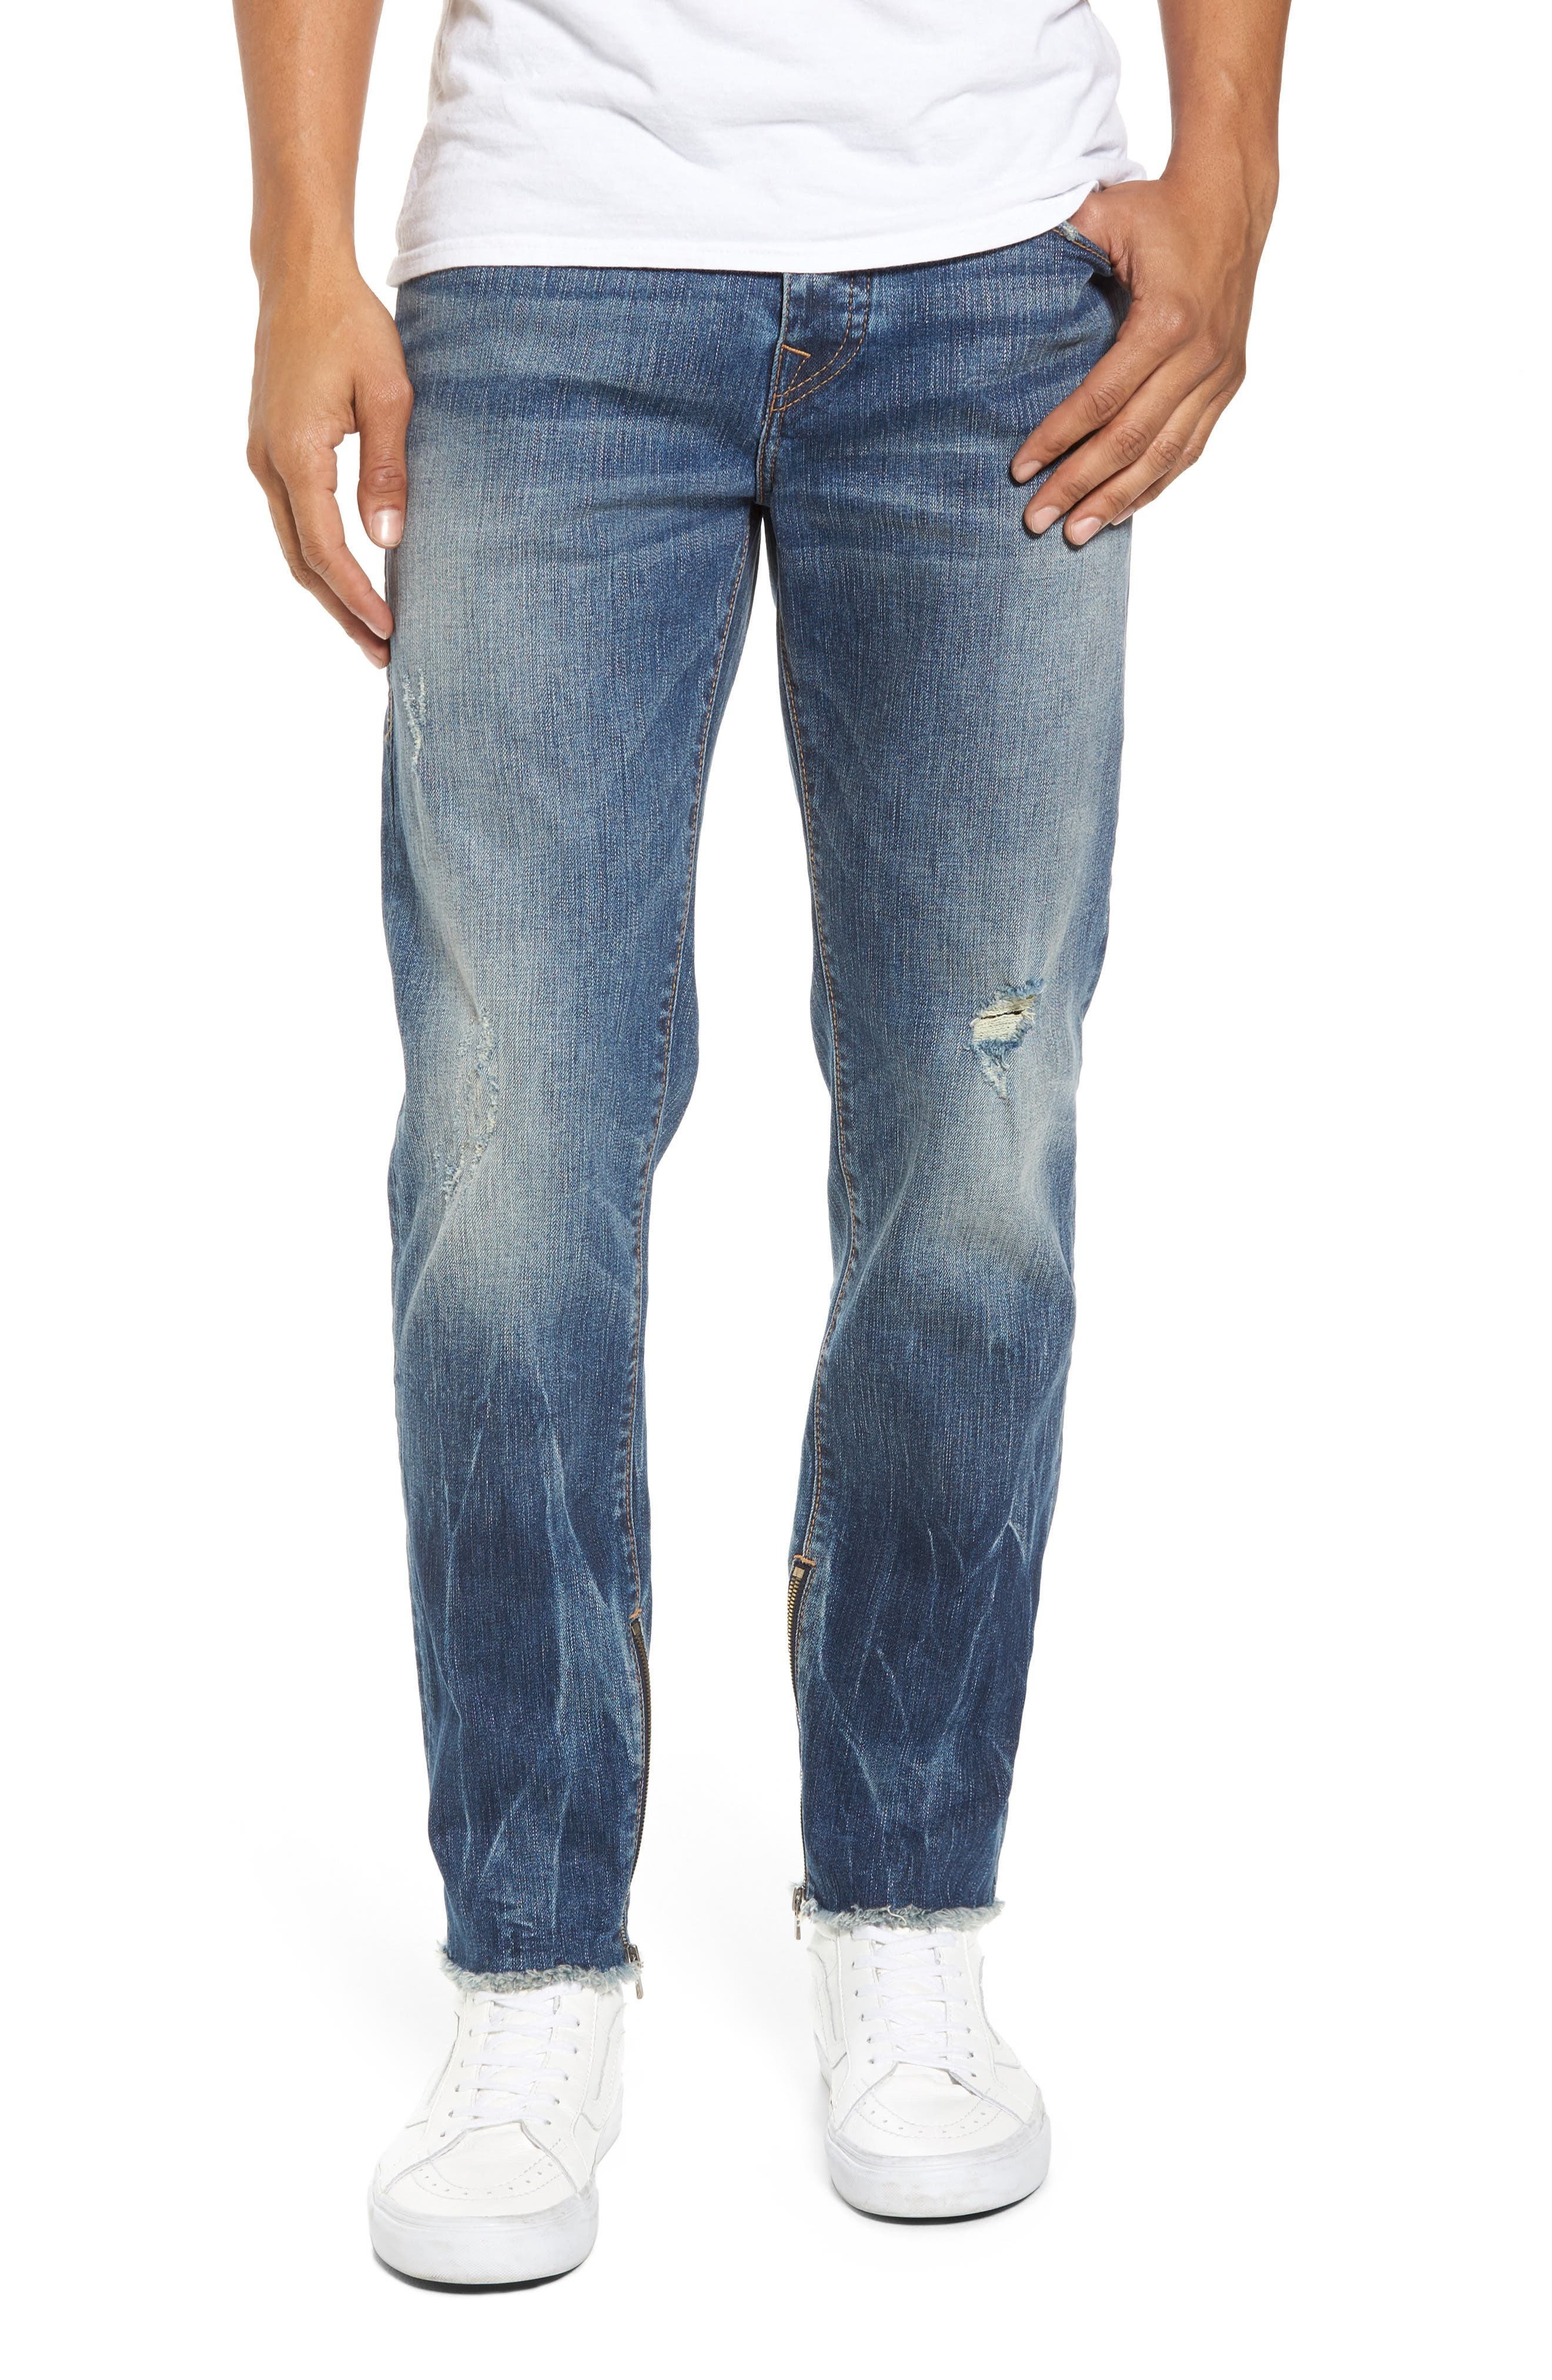 Finn Frayed Skinny Fit Jeans,                             Main thumbnail 1, color,                             402